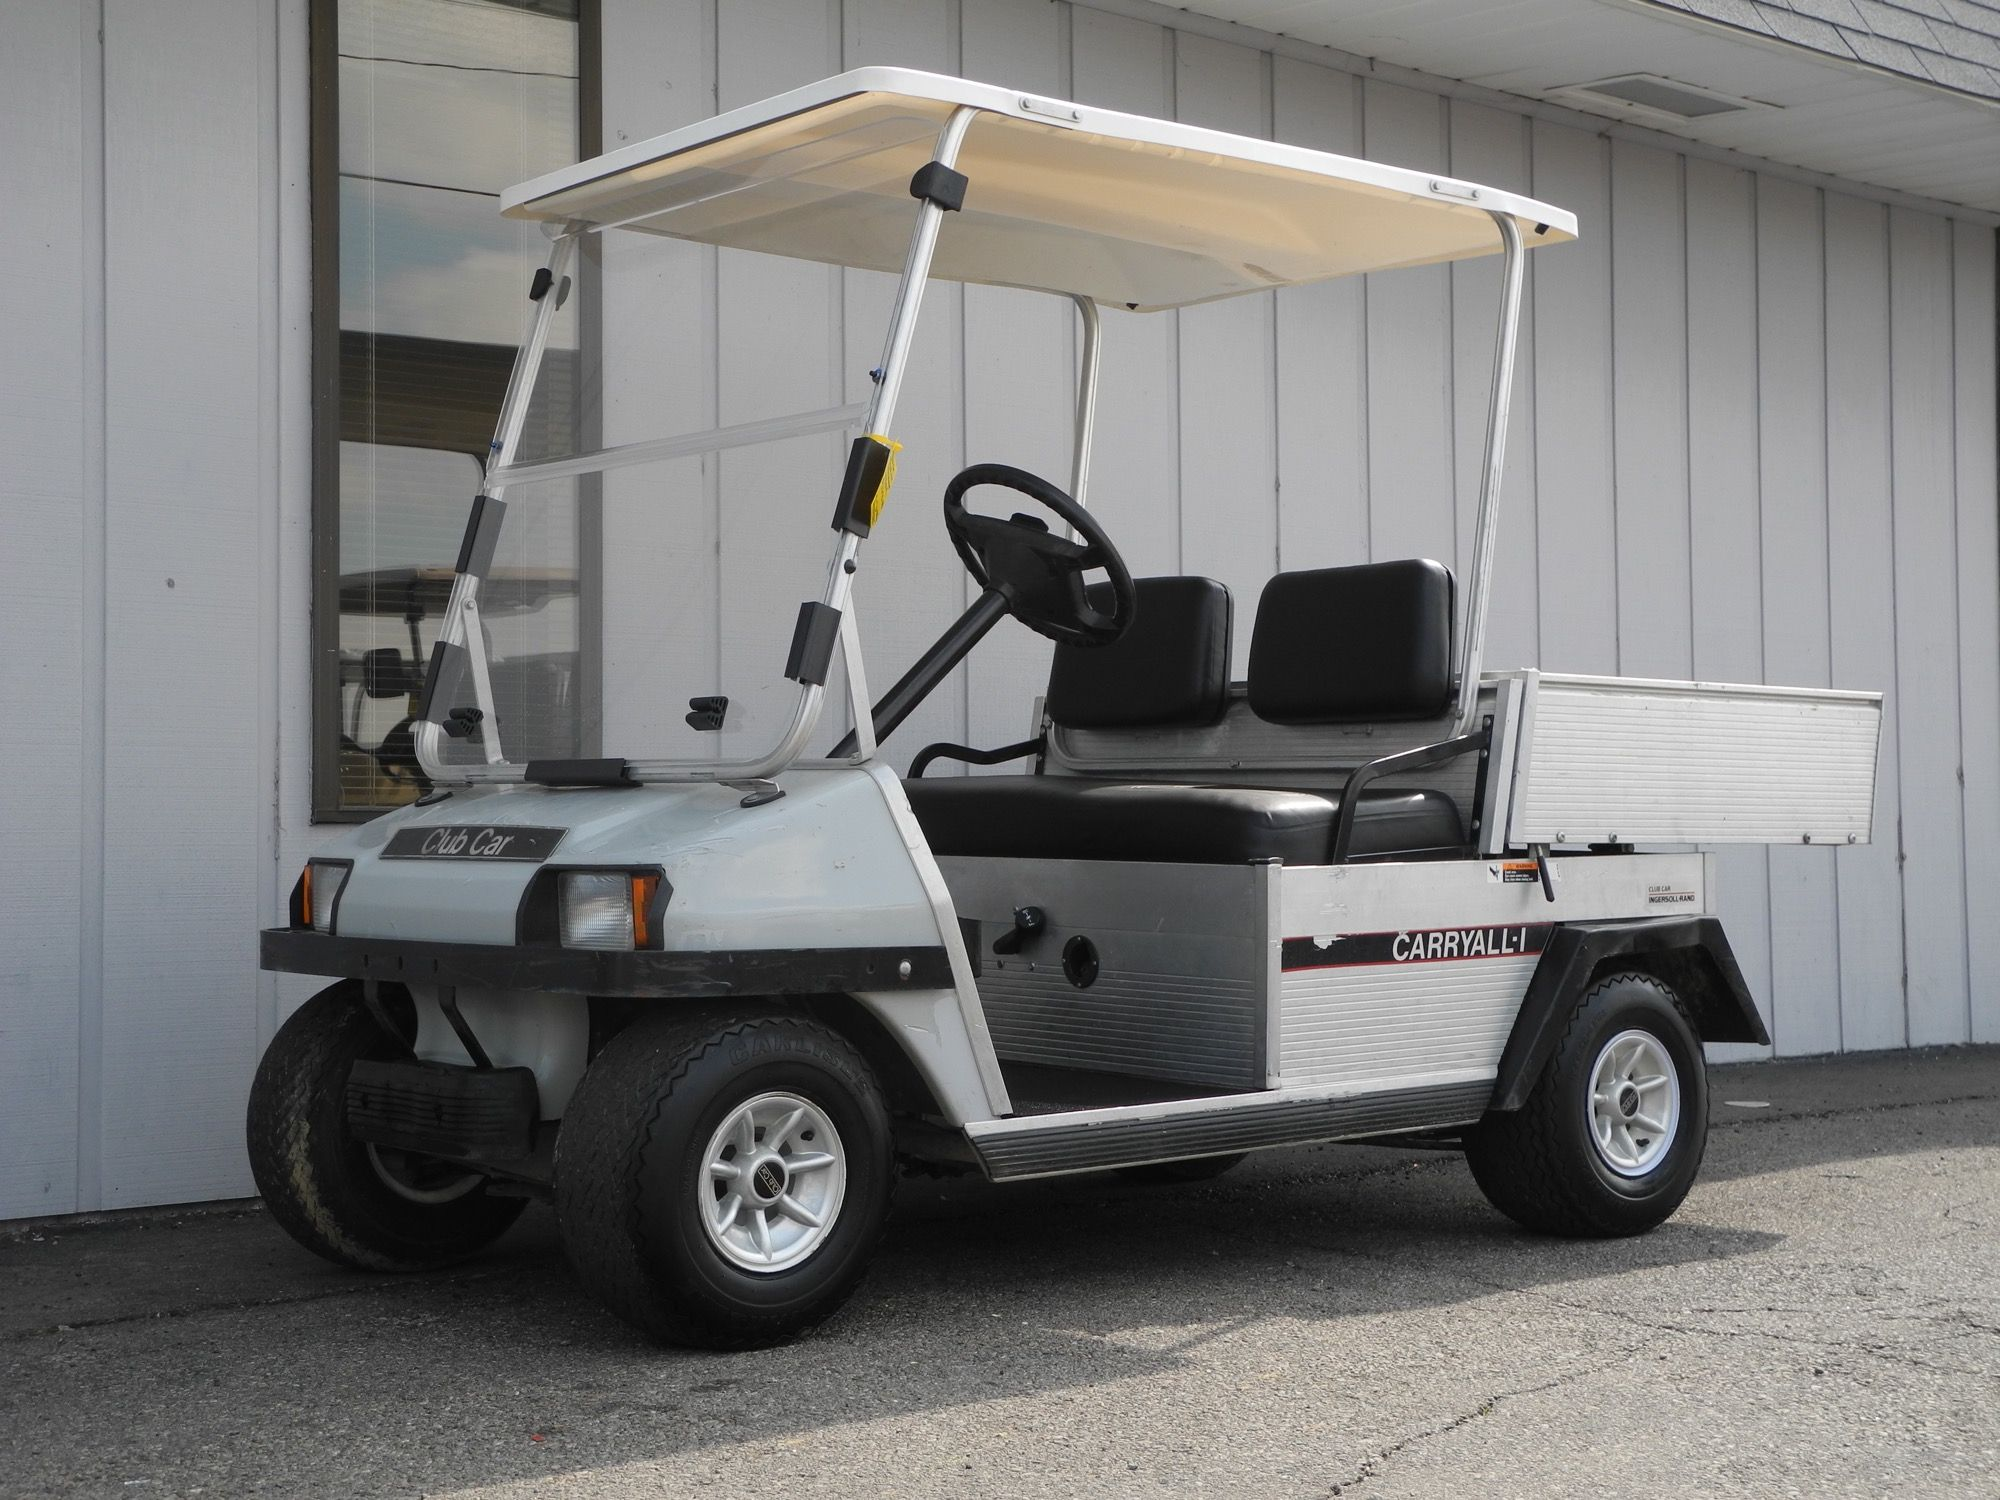 Explore club car golf carts used golf carts and more